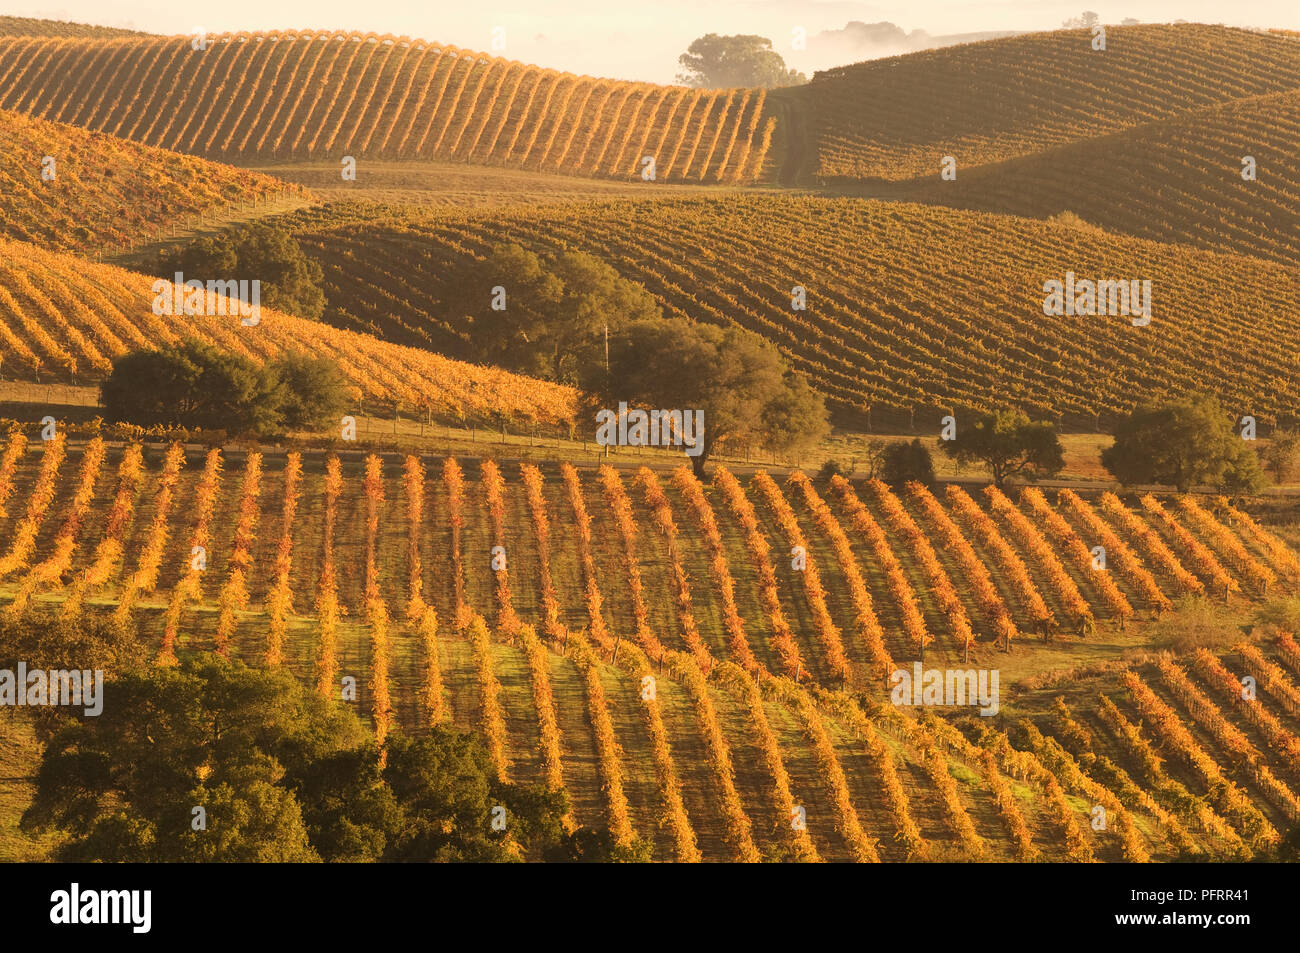 USA, California, Napa County, vast Carneros vineyards at sunset - Stock Image